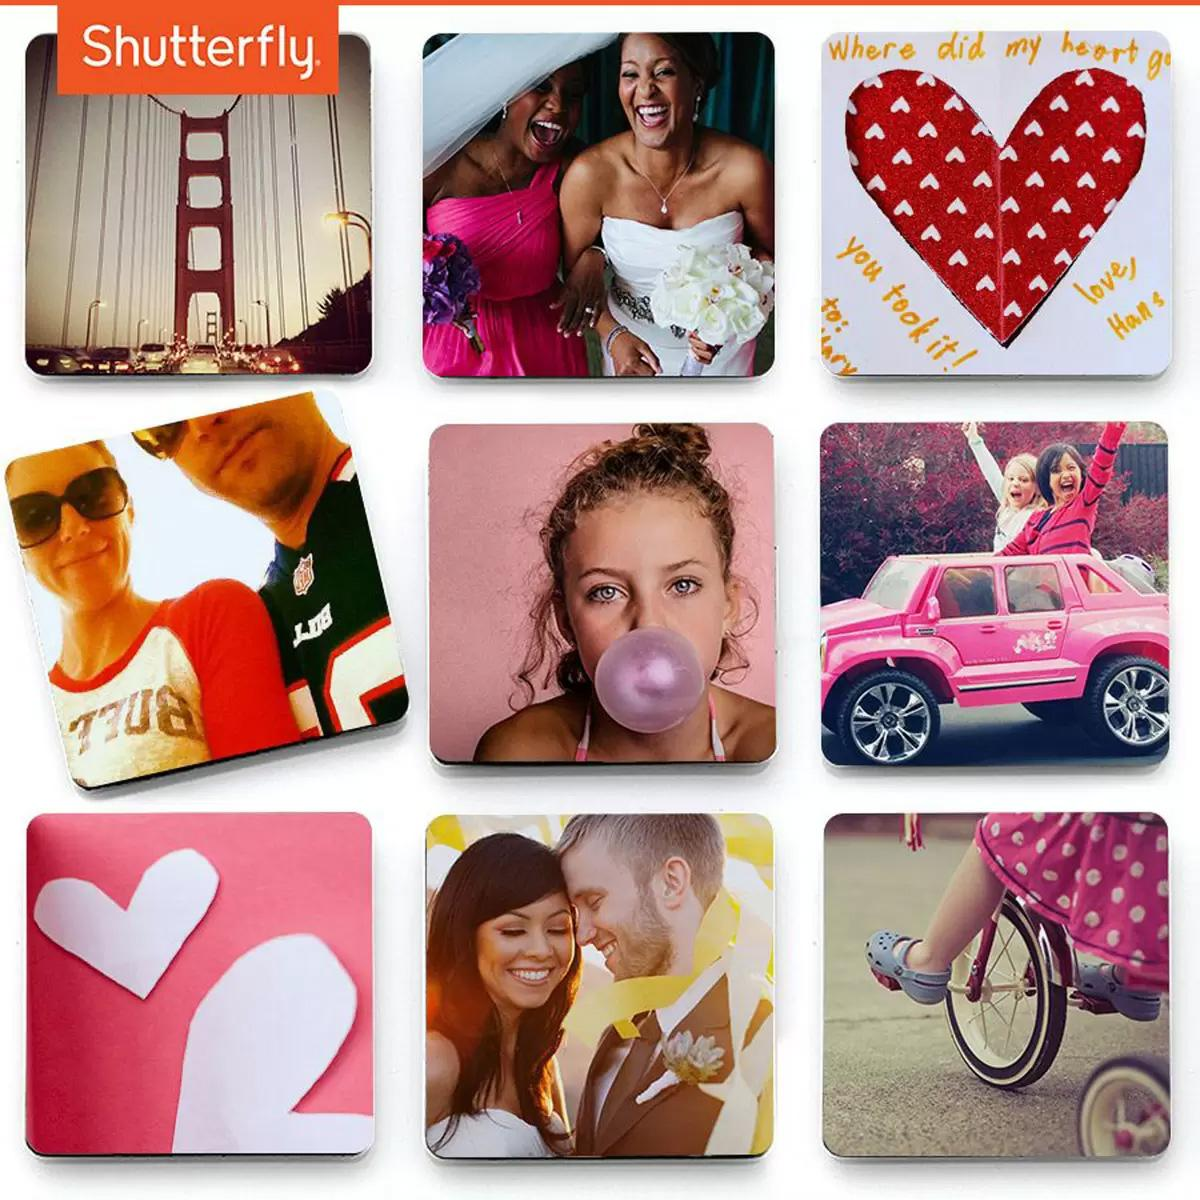 3x Photo Magnet Set for $0.28 Shipped